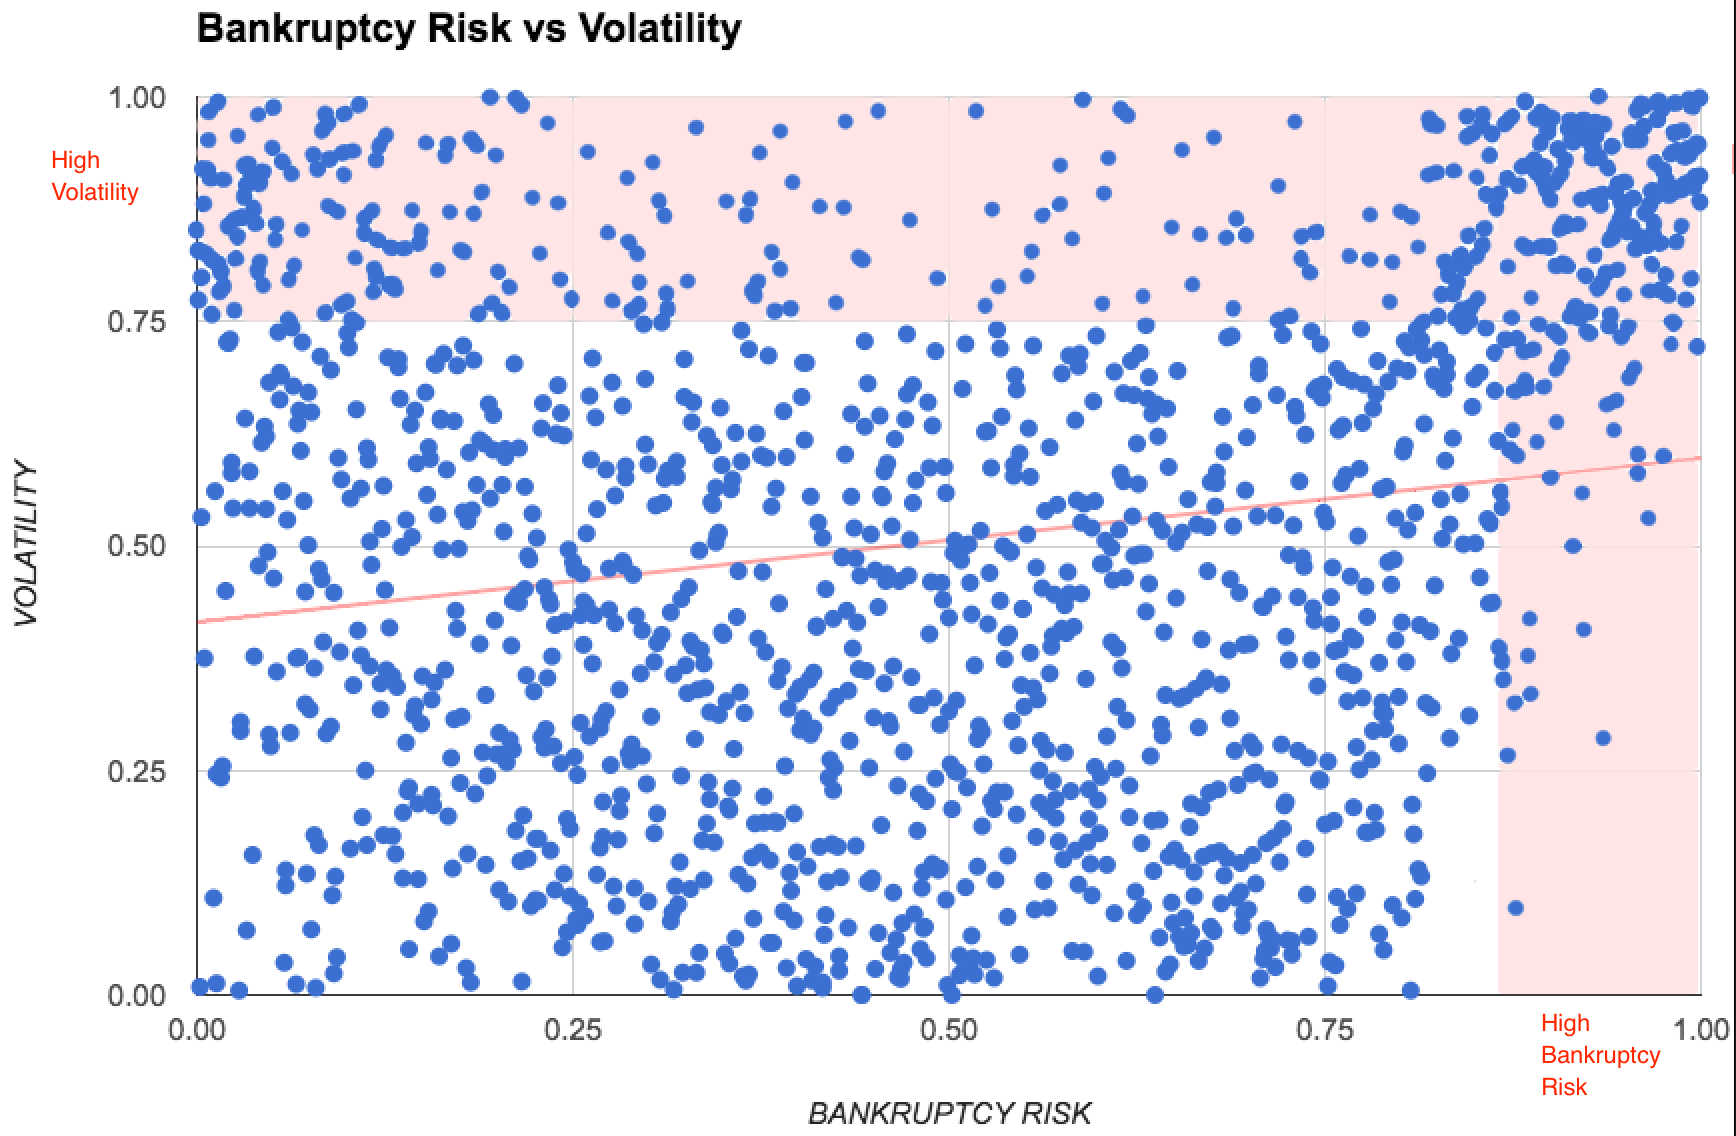 Volatilty_vs_Bankruptcy_Risk.png